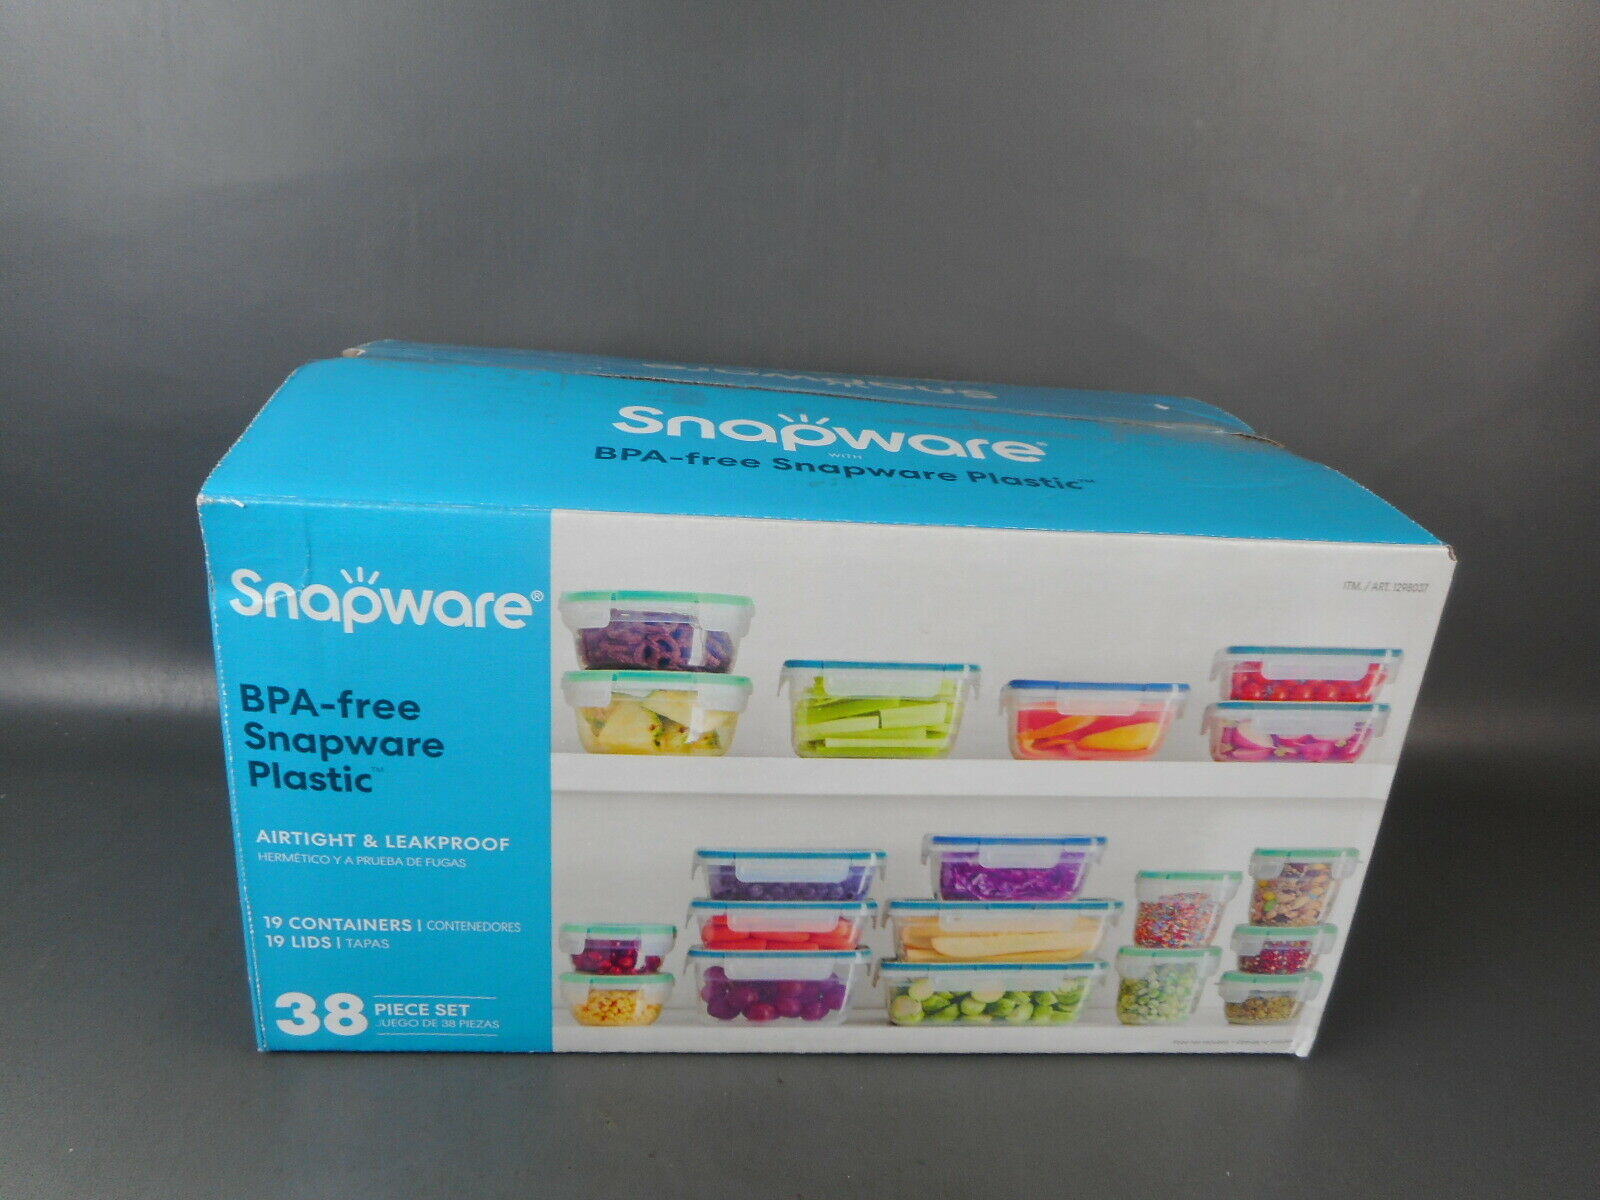 Plastic Food Storage Set, 38 Pieces, Snapware Food Storage (Complete) Opened Box 1